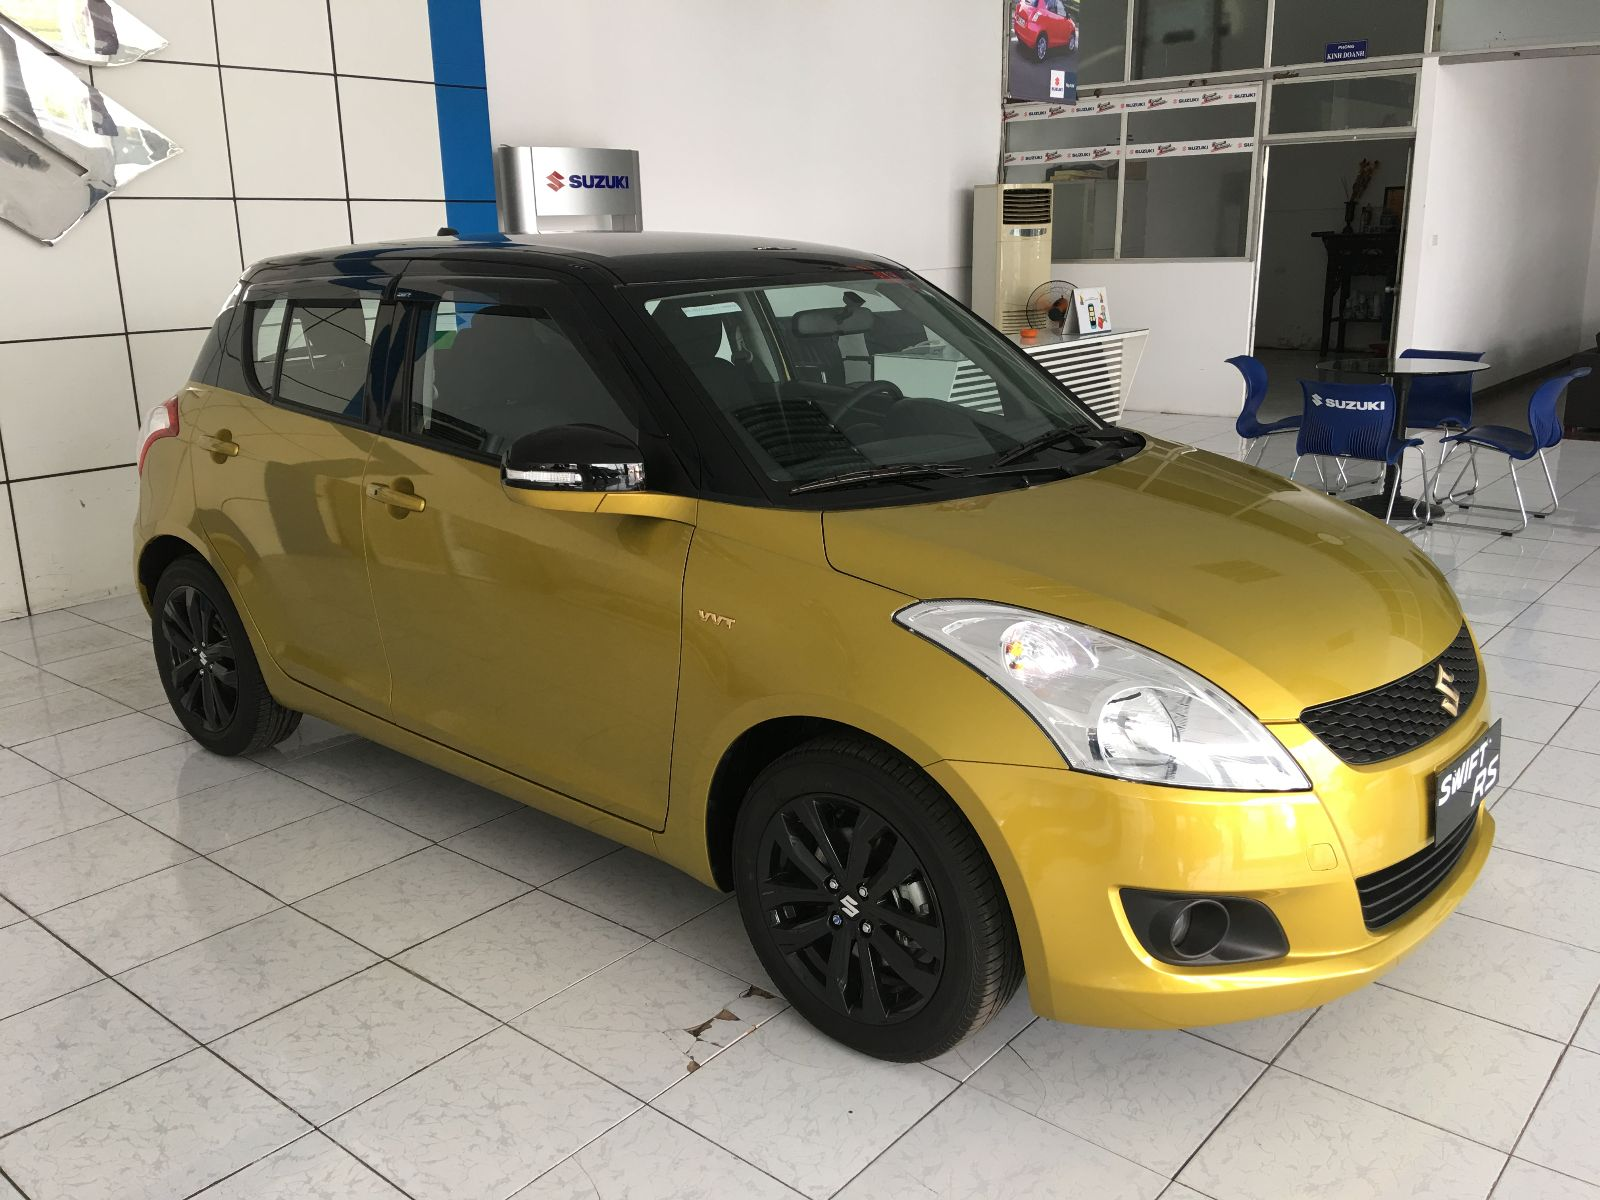 Suzuki swift rs mau vang